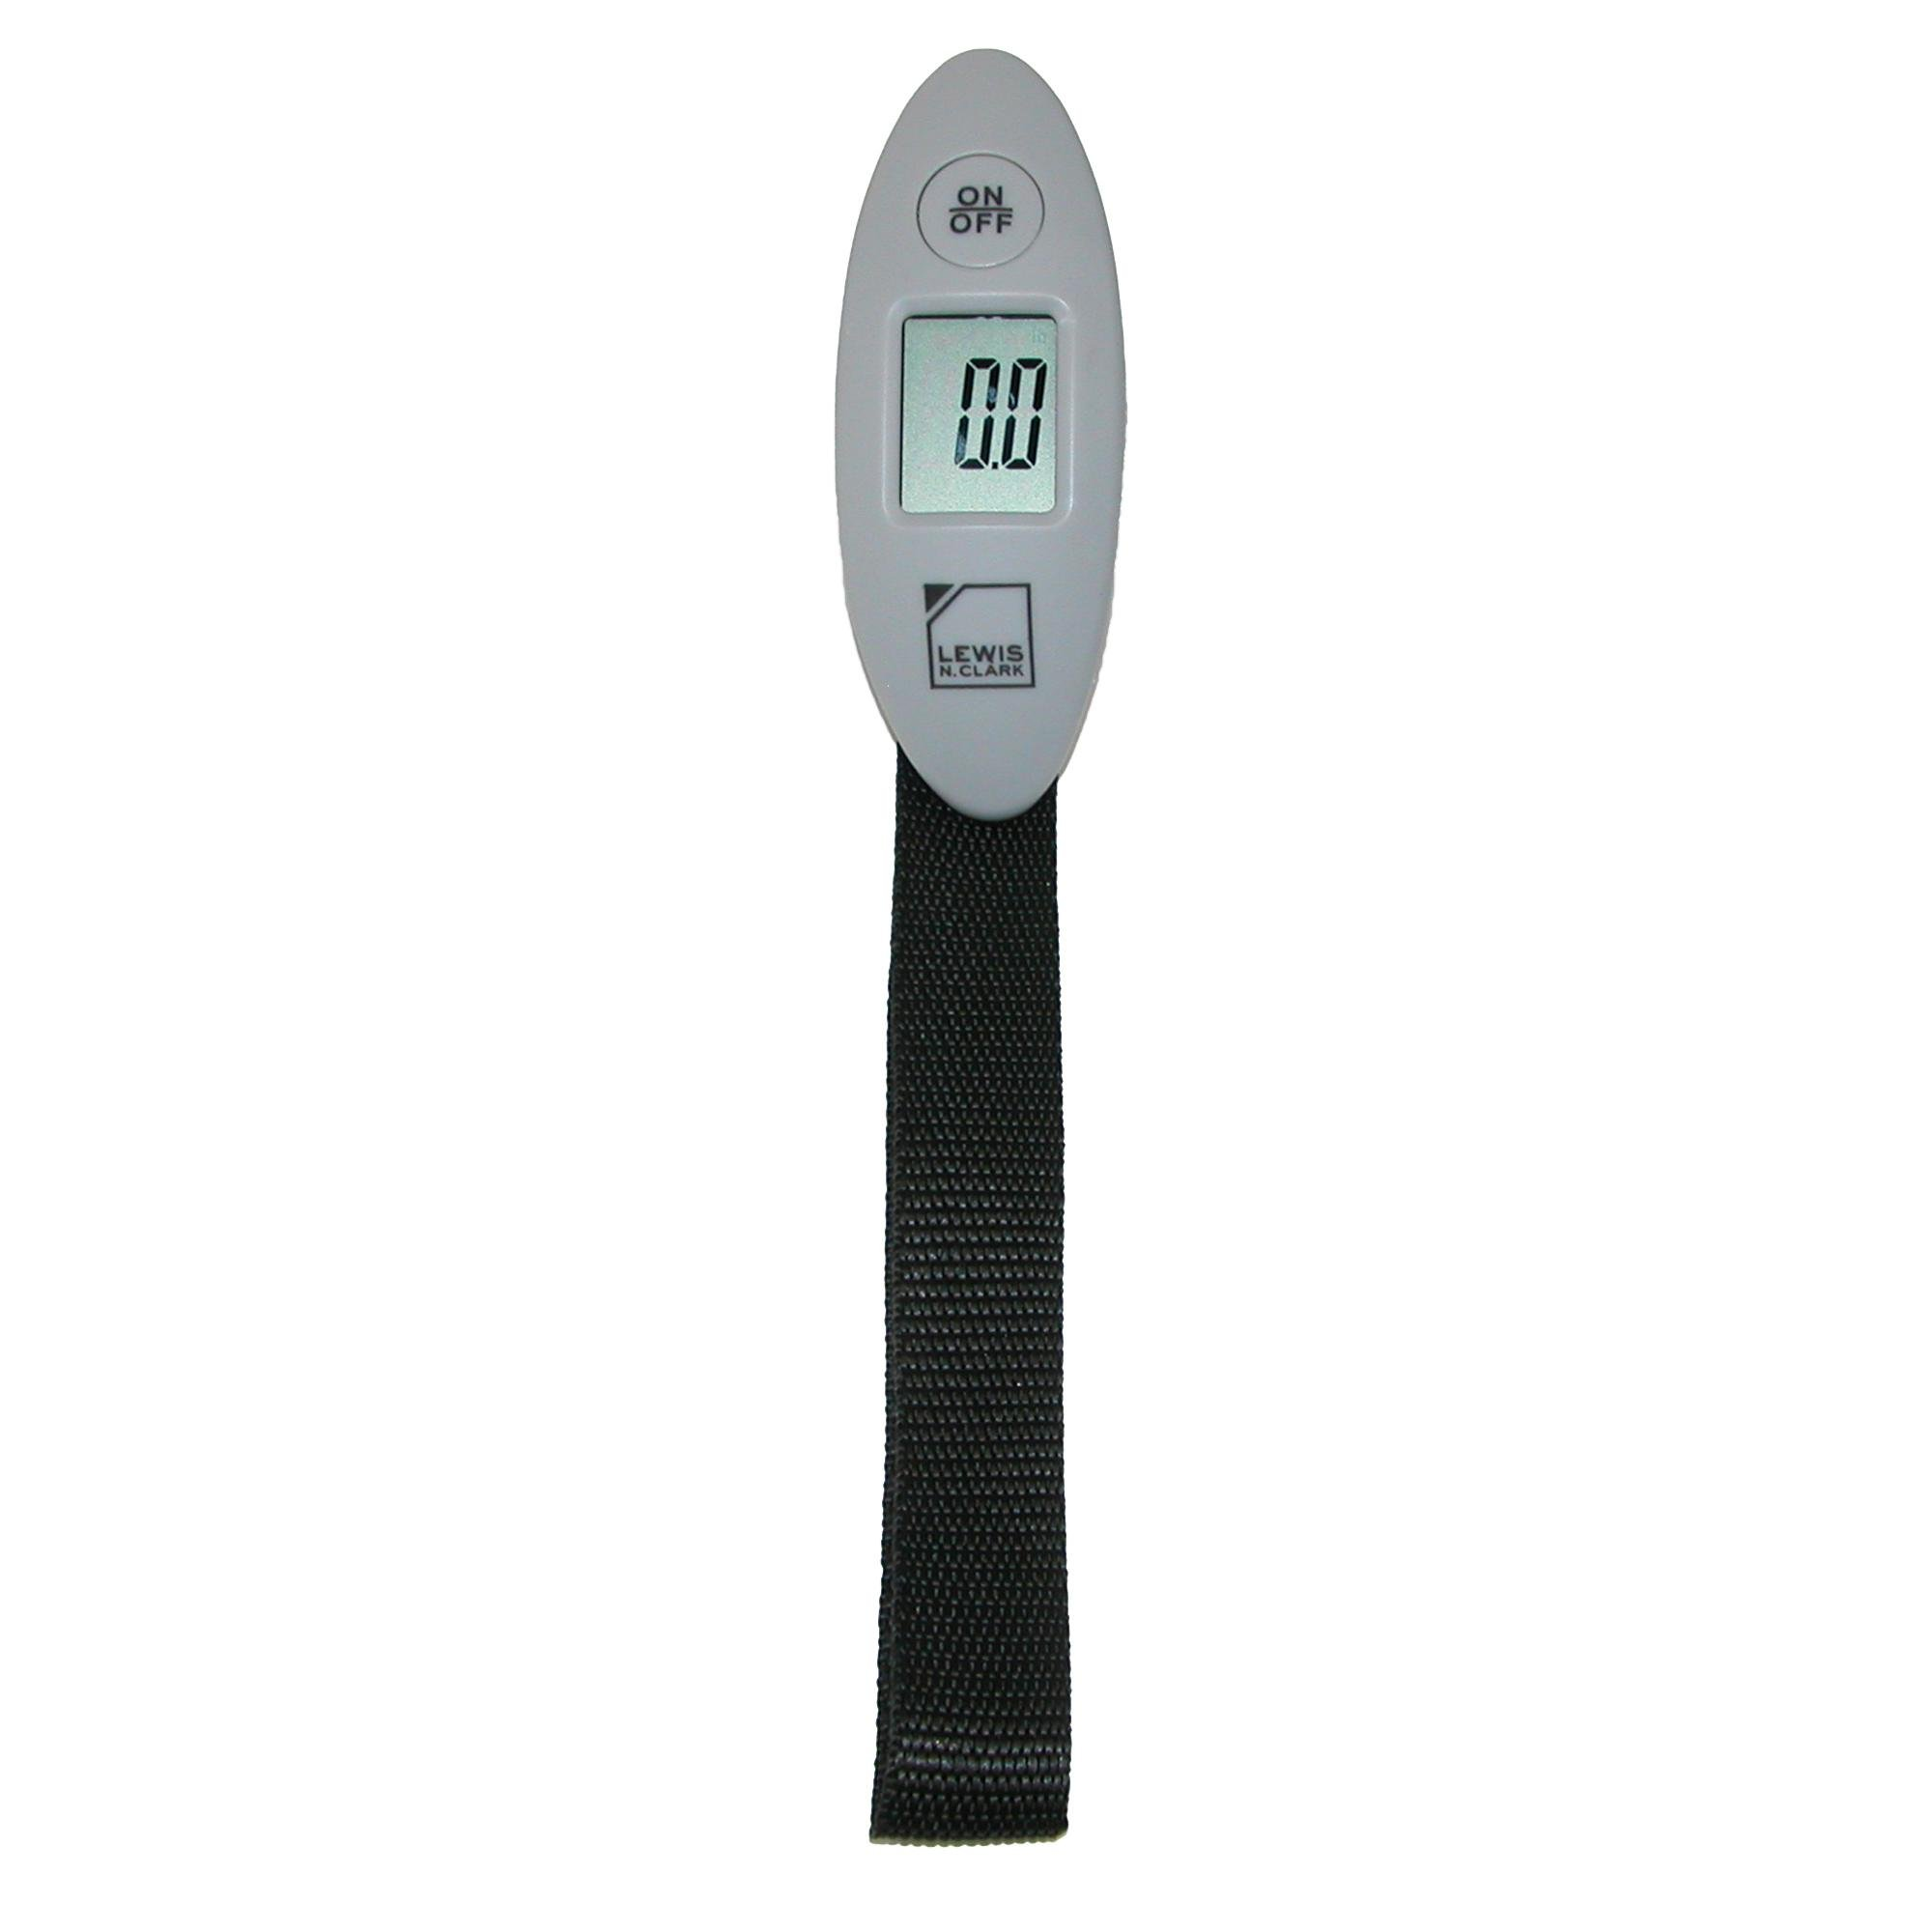 Lewis N. Clark Mini Digital Luggage Scale, Gray